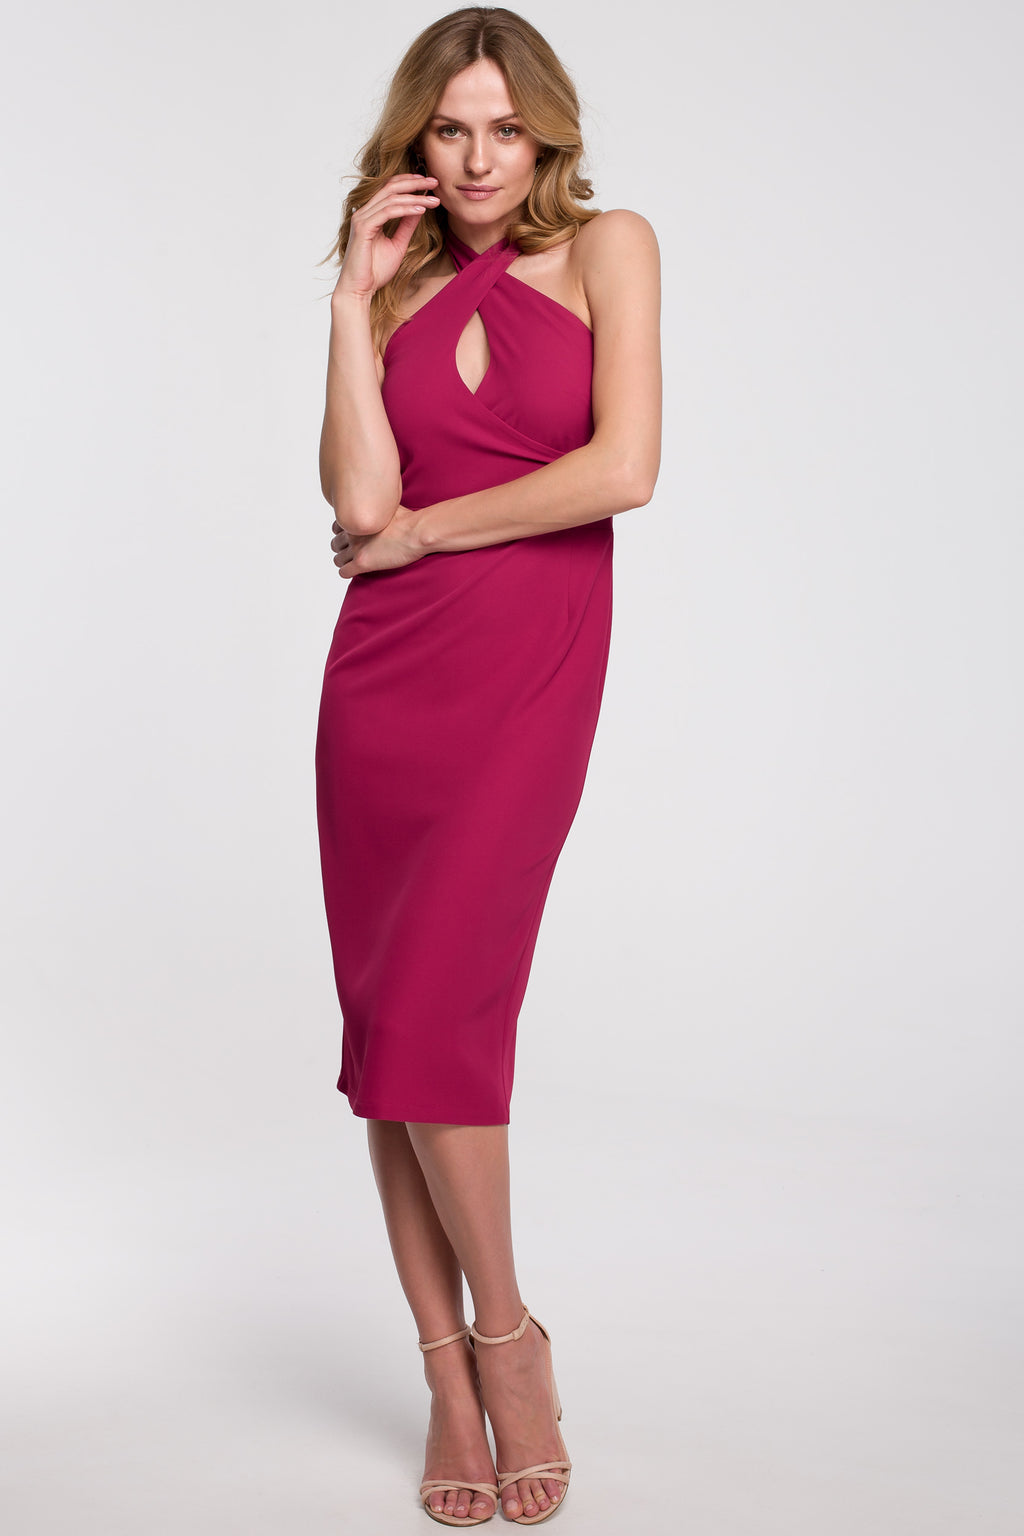 Midi Dark Pink Dress With Cross Front - So Chic Boutique